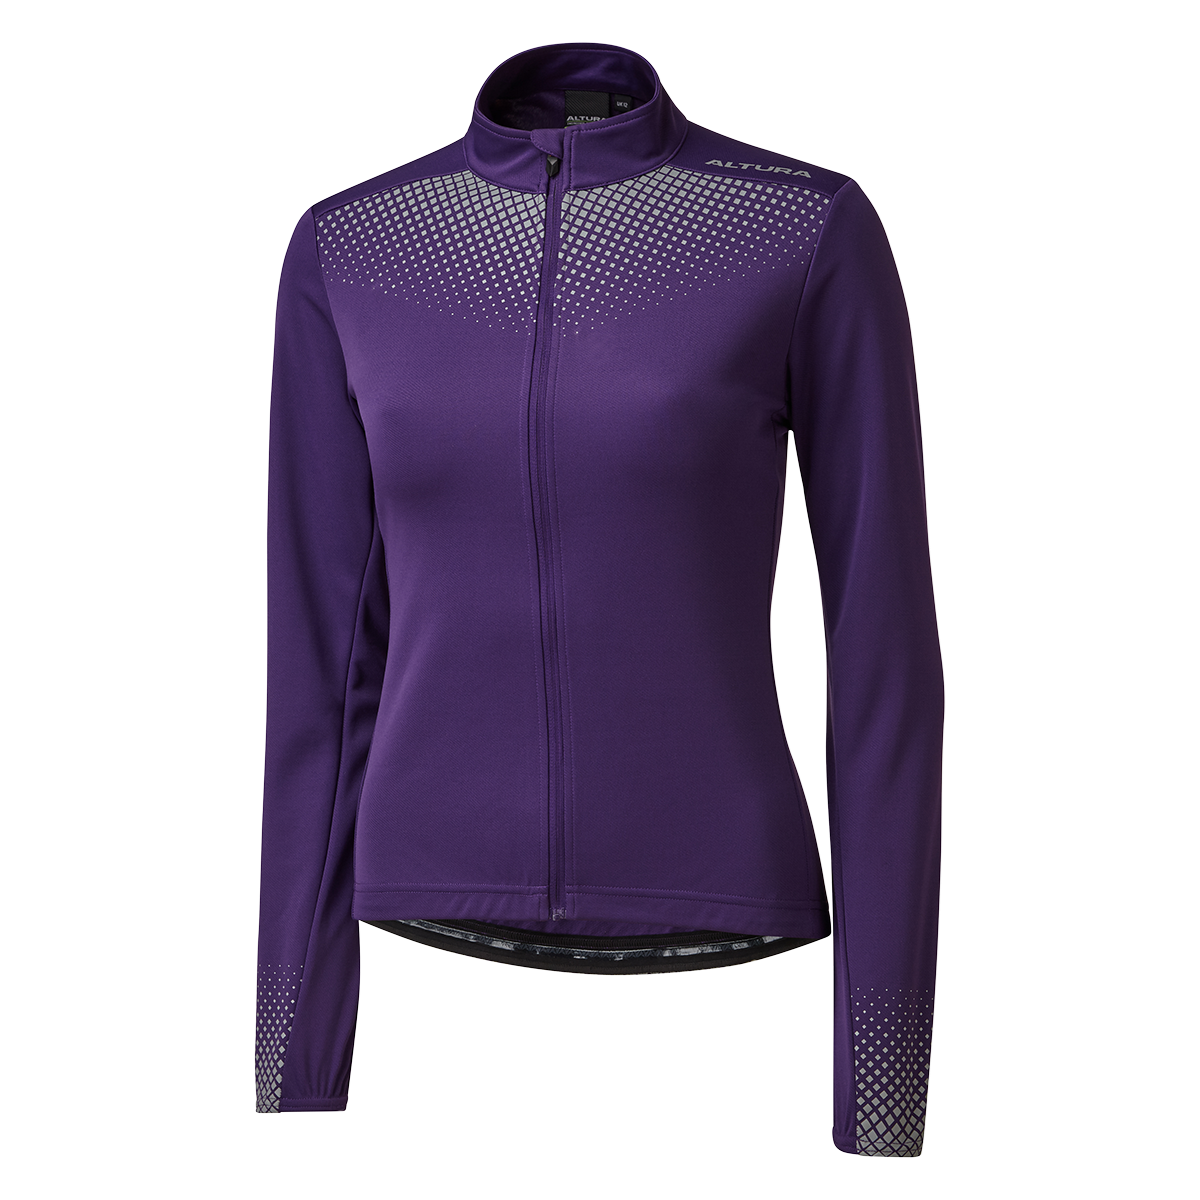 Women's Nightvision Long Sleeve Jersey